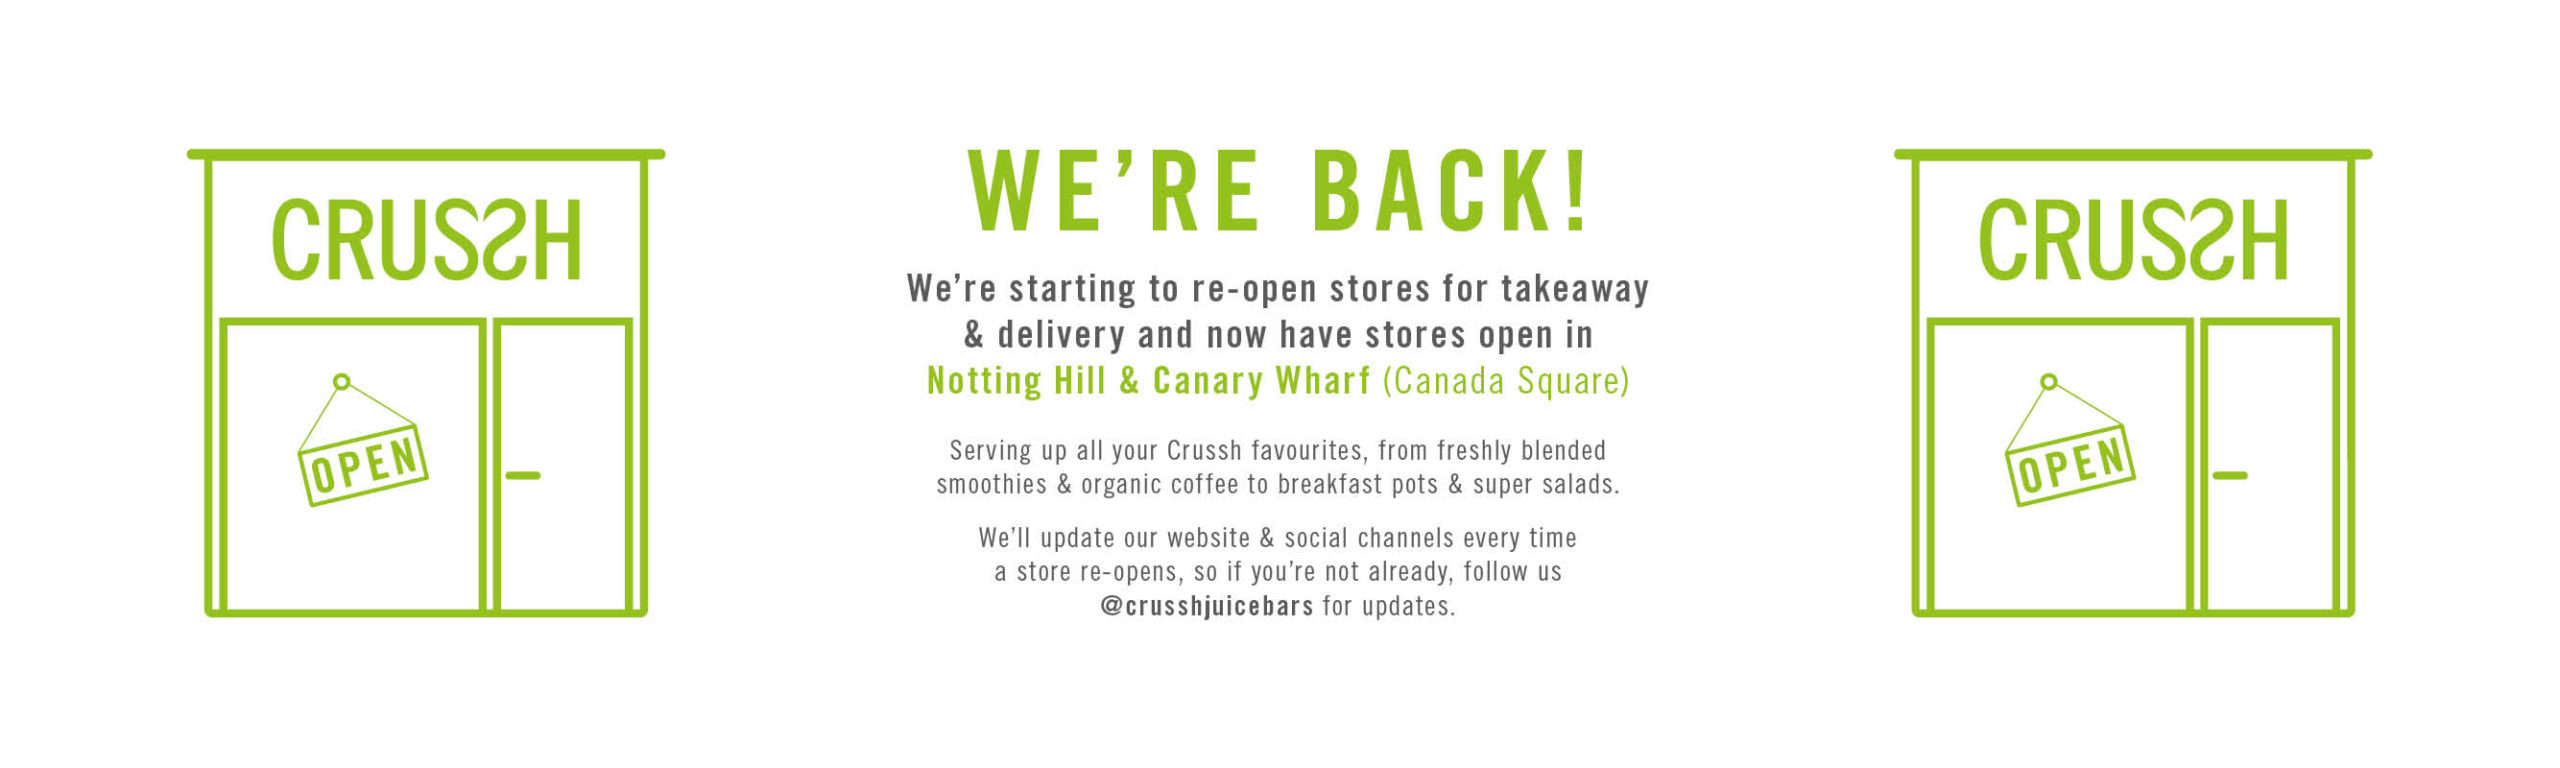 Store reopening